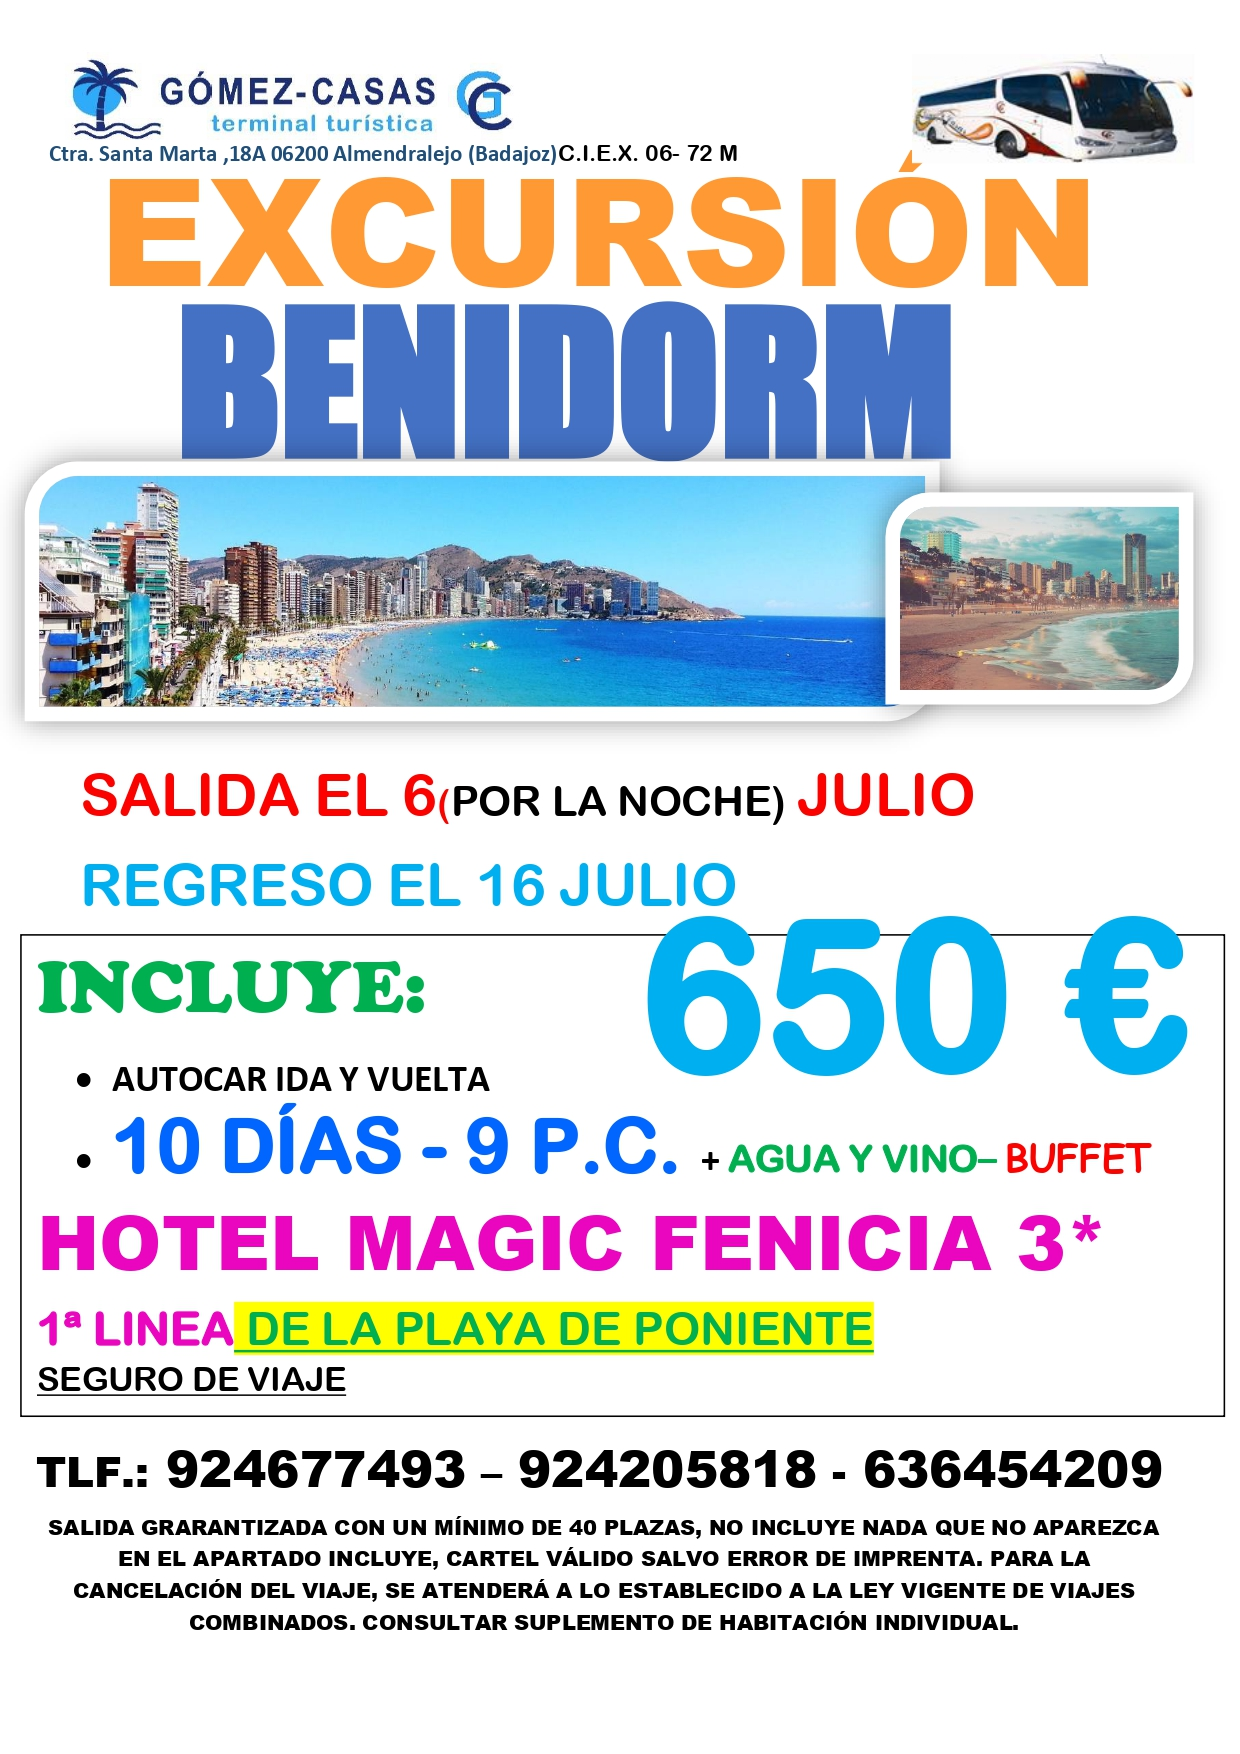 BENIDORM H.MAGIC FENICIA 10 DÍAS